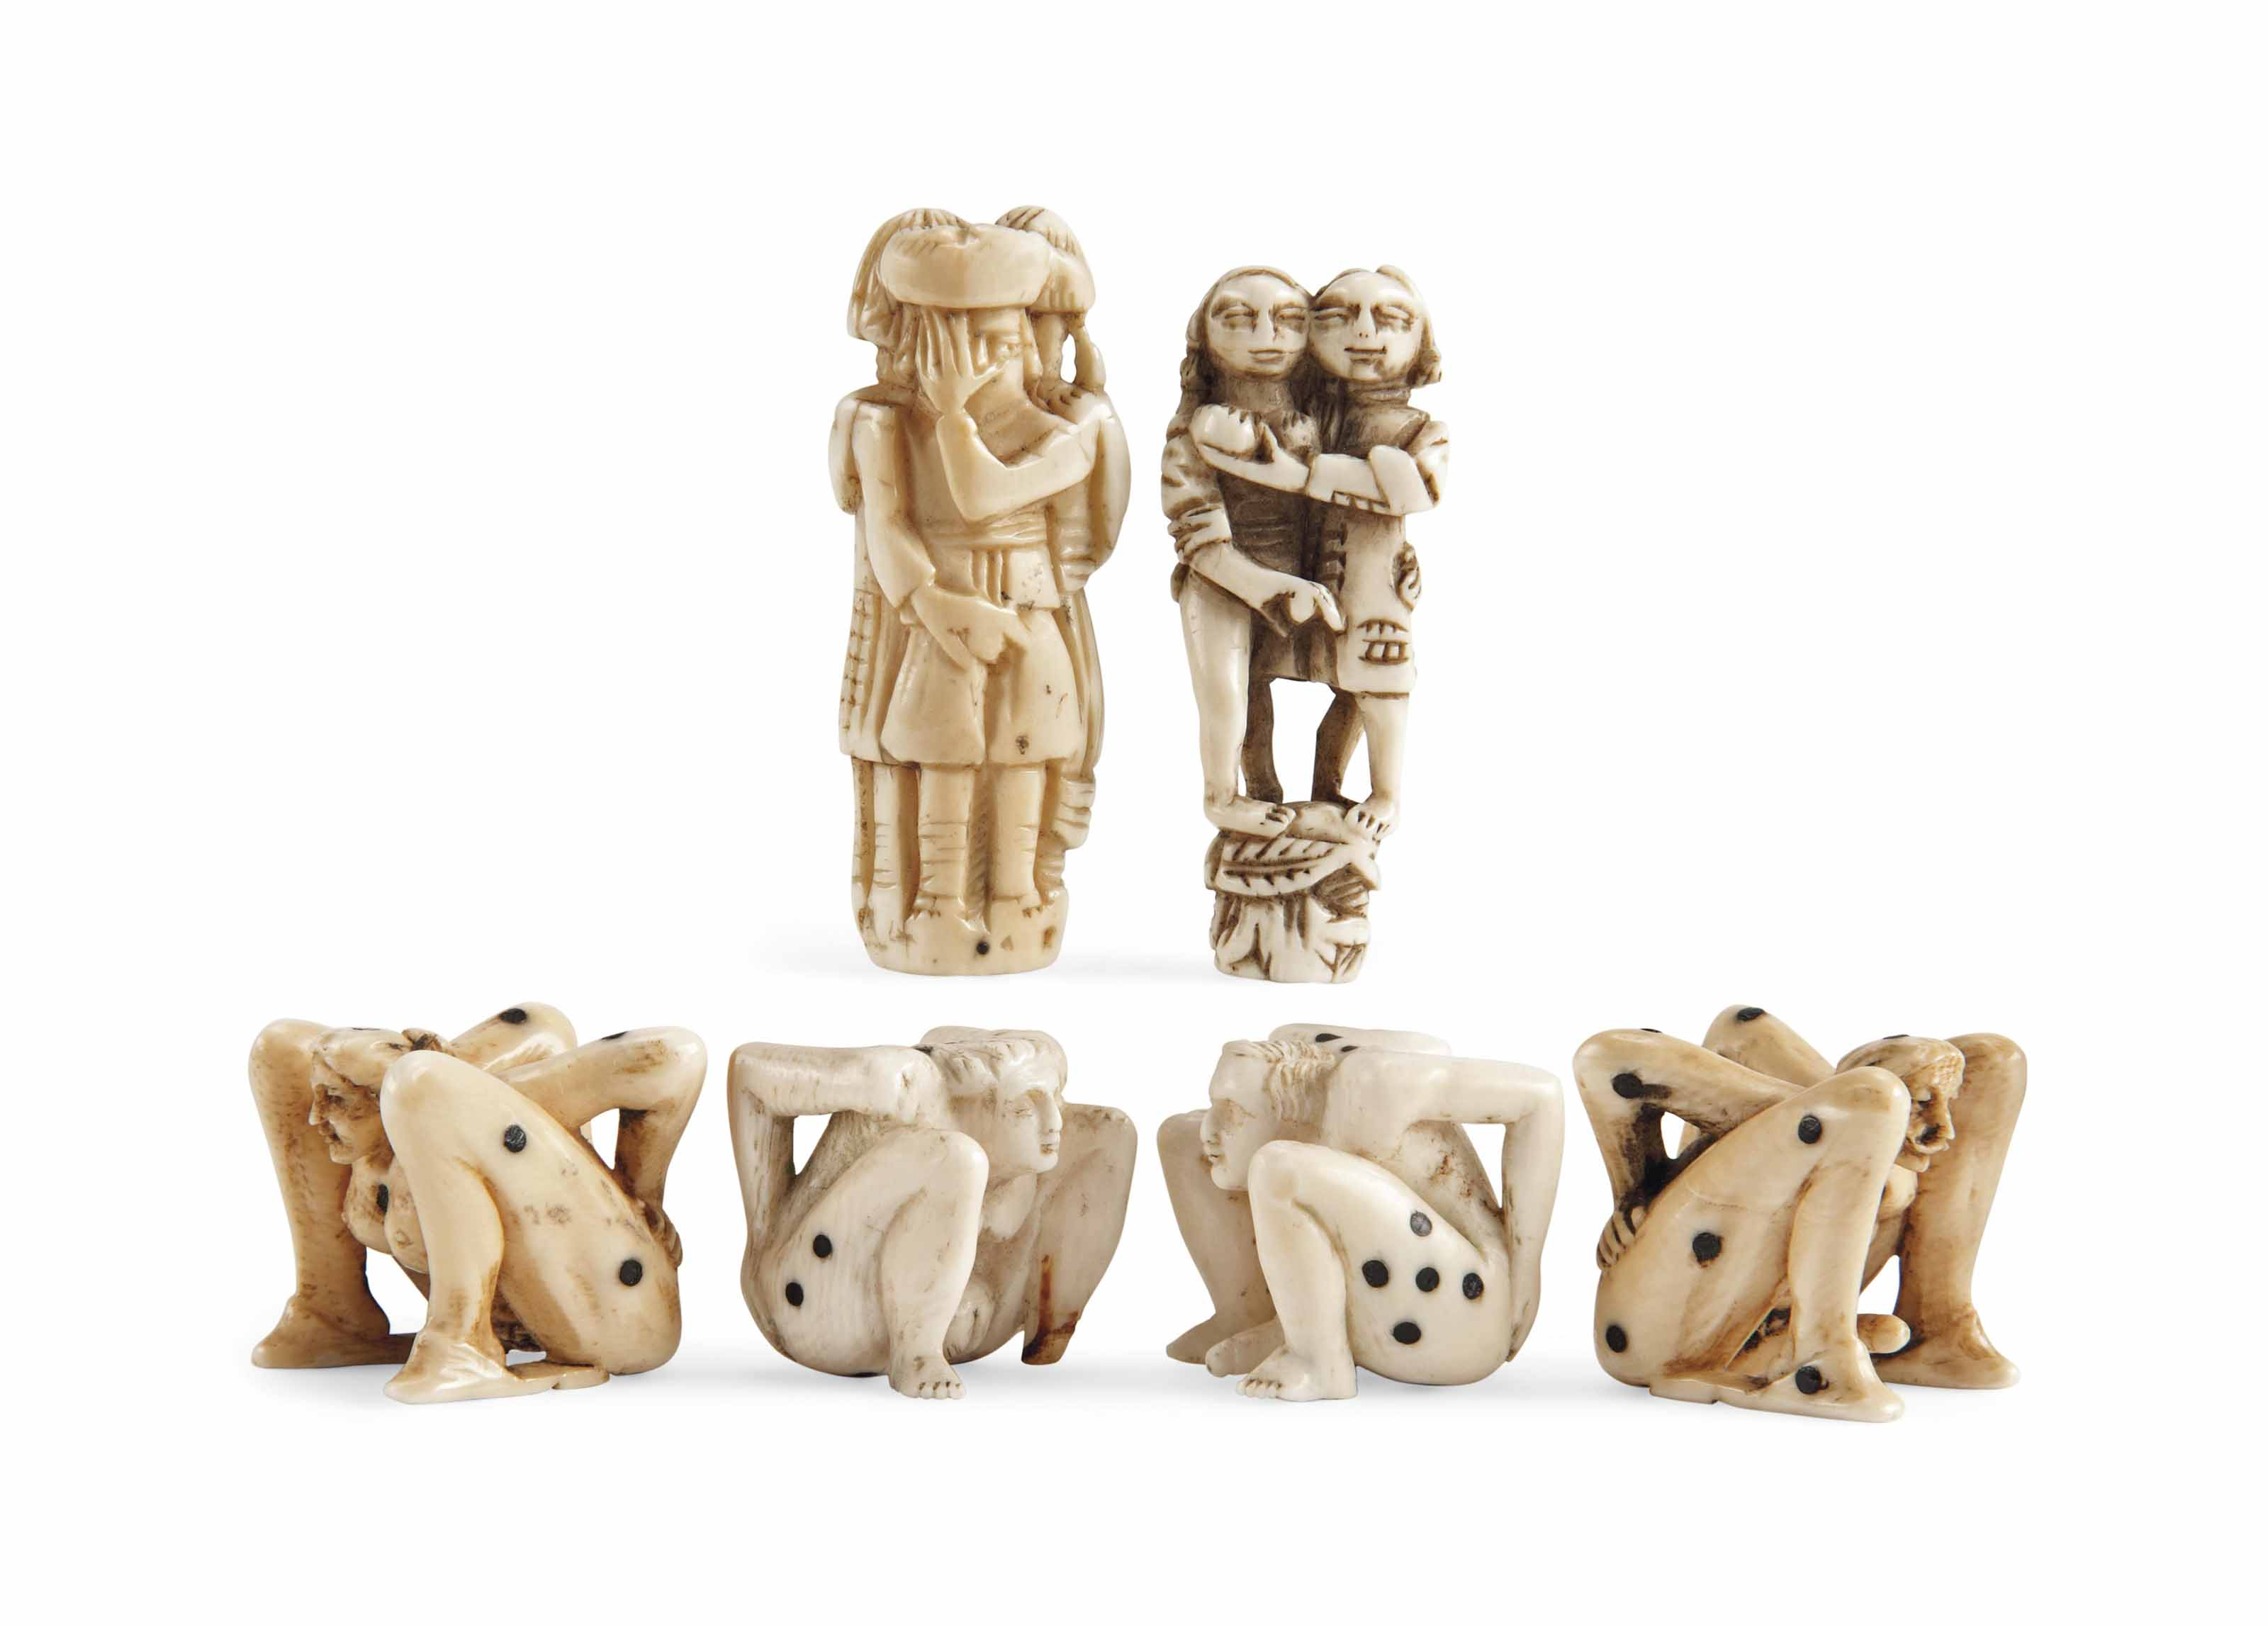 TWO PAIRS OF GERMAN IVORY EROT